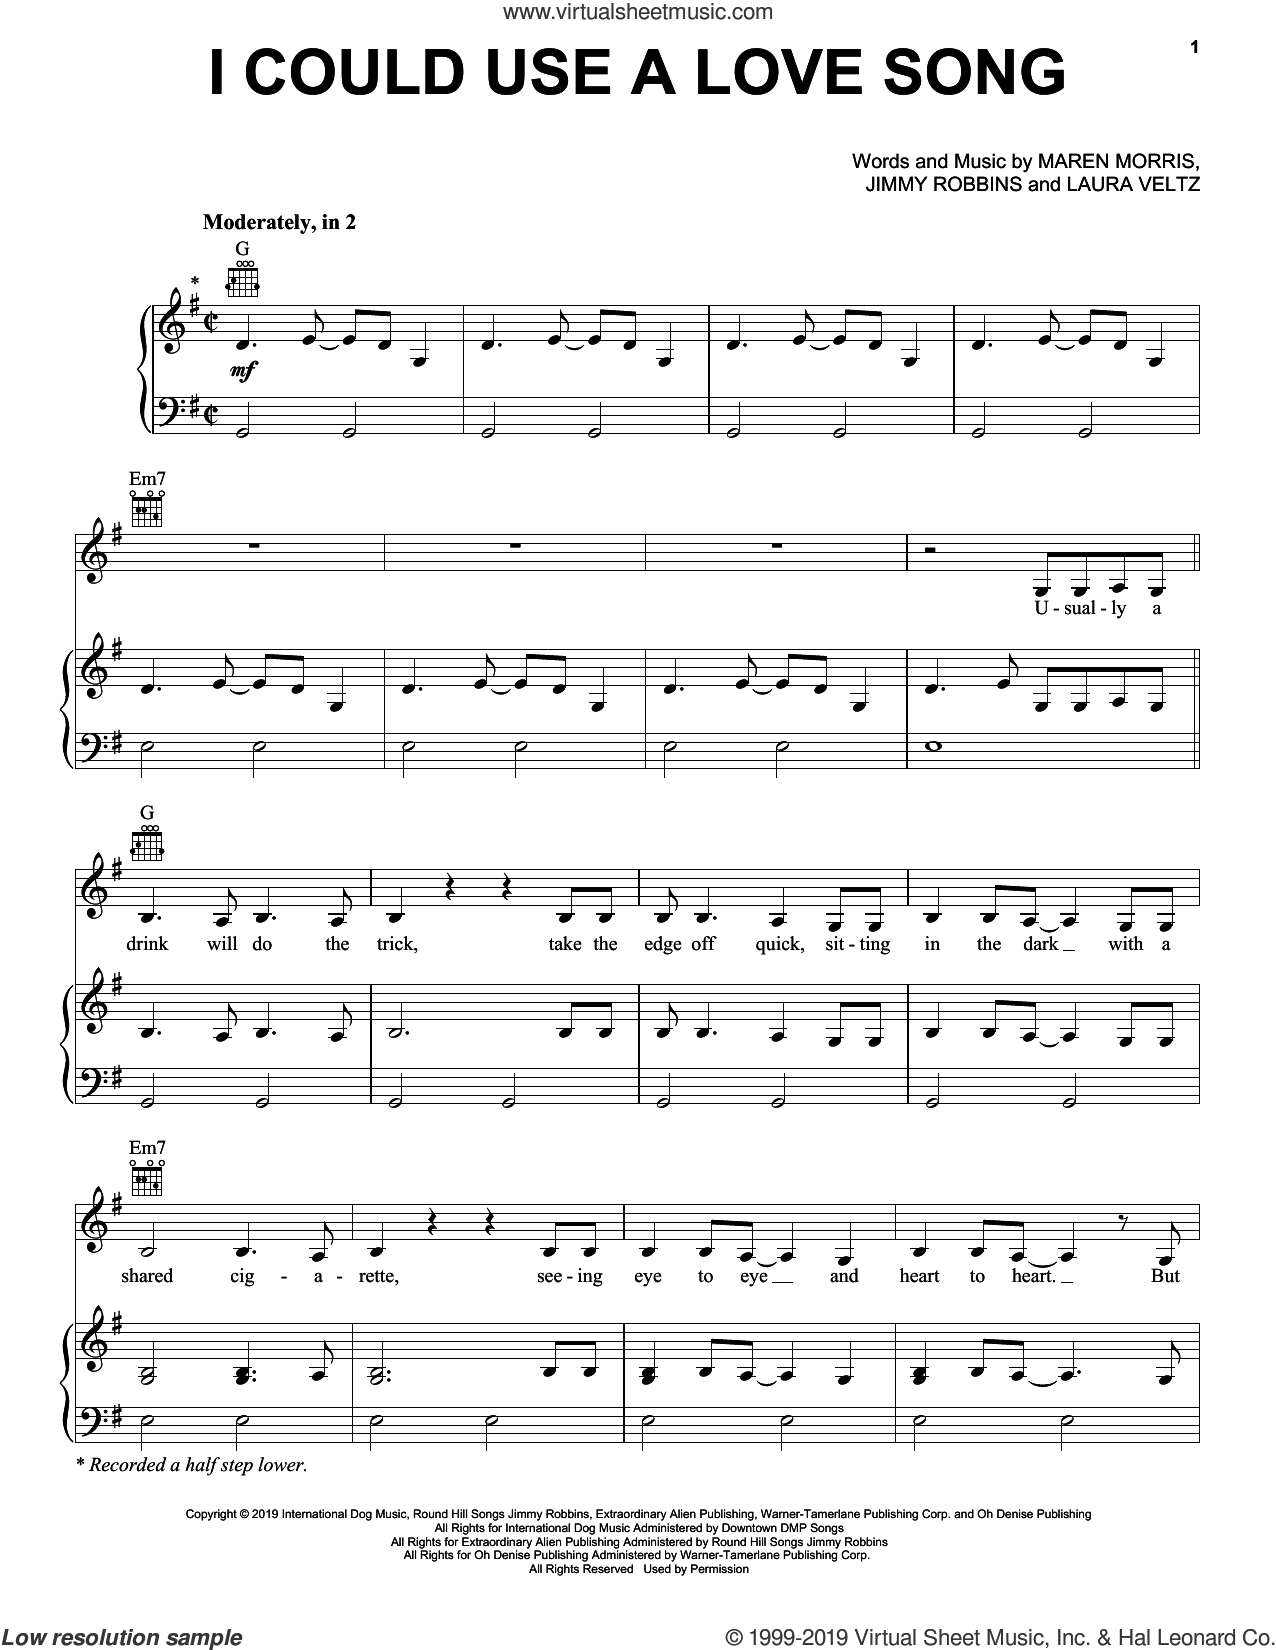 I Could Use A Love Song sheet music for voice, piano or guitar by Maren Morris, Jimmy Robbins and Laura Veltz, intermediate skill level